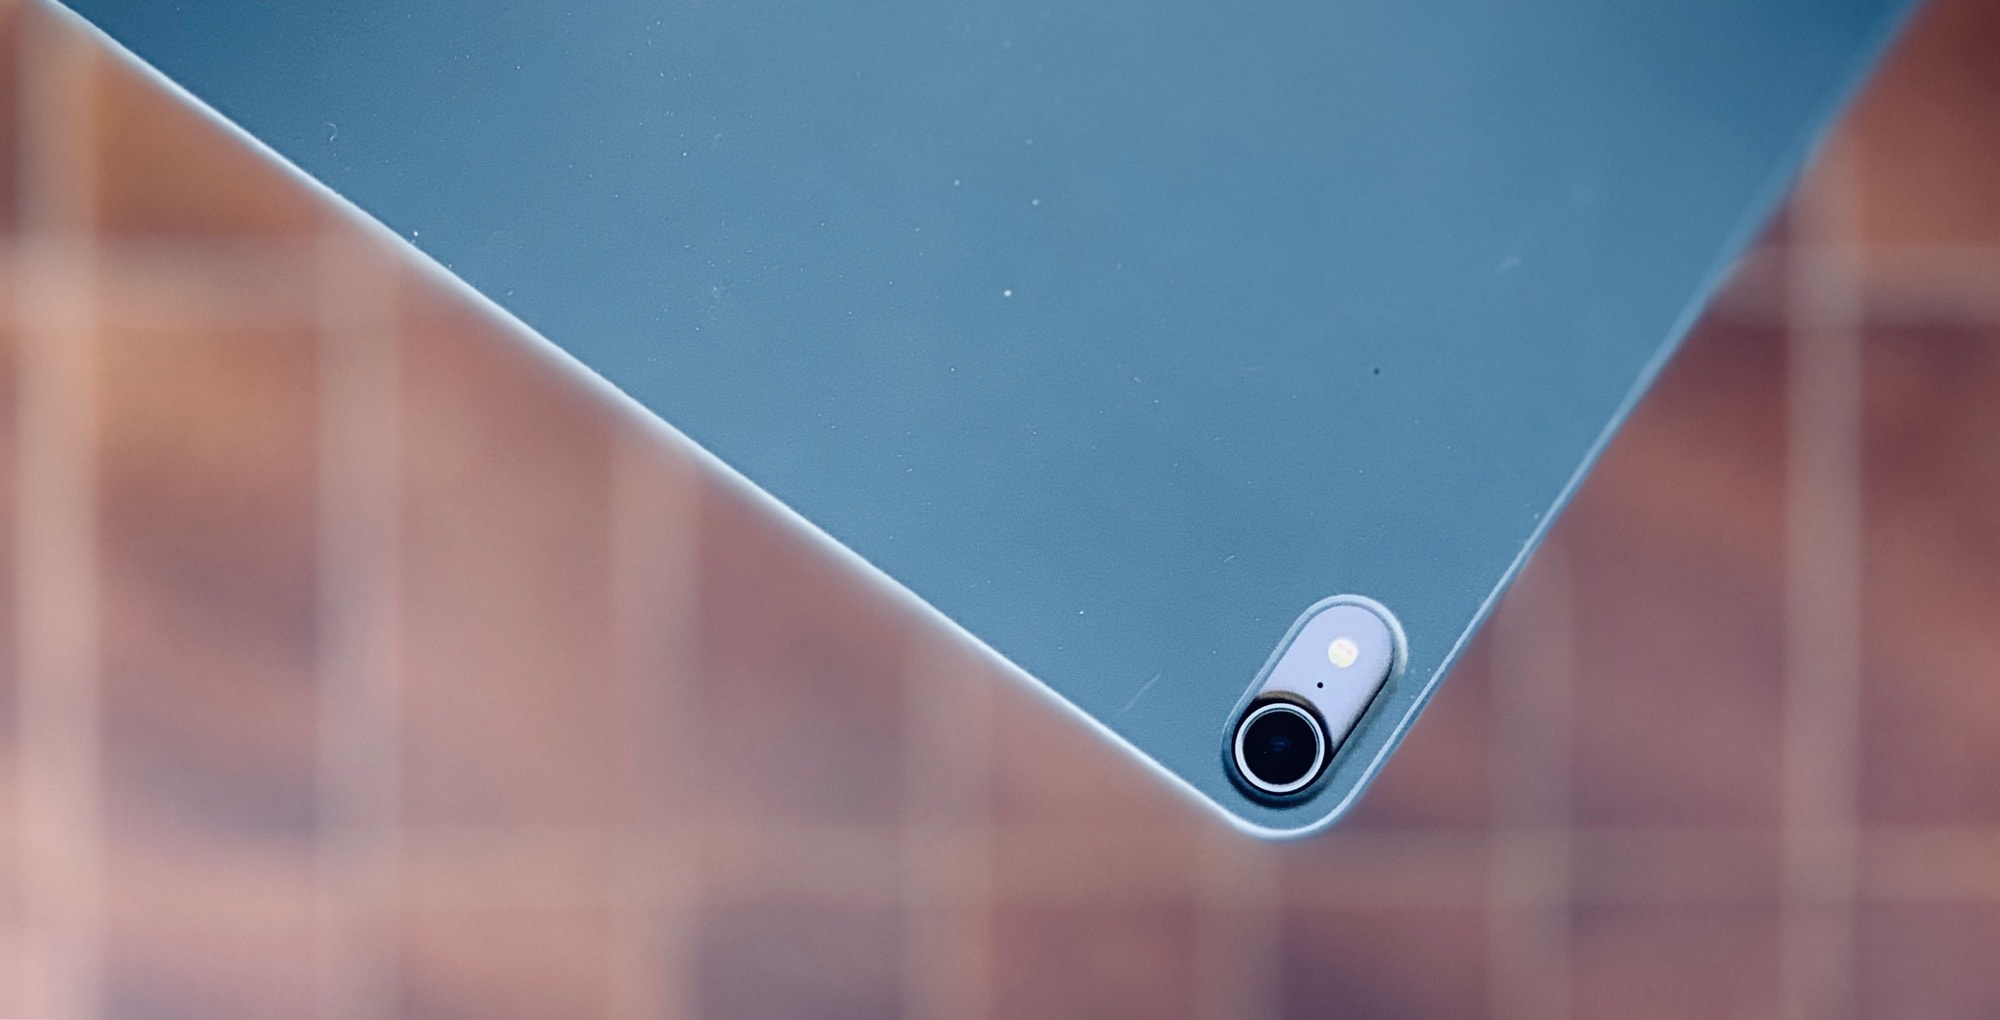 The Smart Folio Cover also eliminates the camera bump.